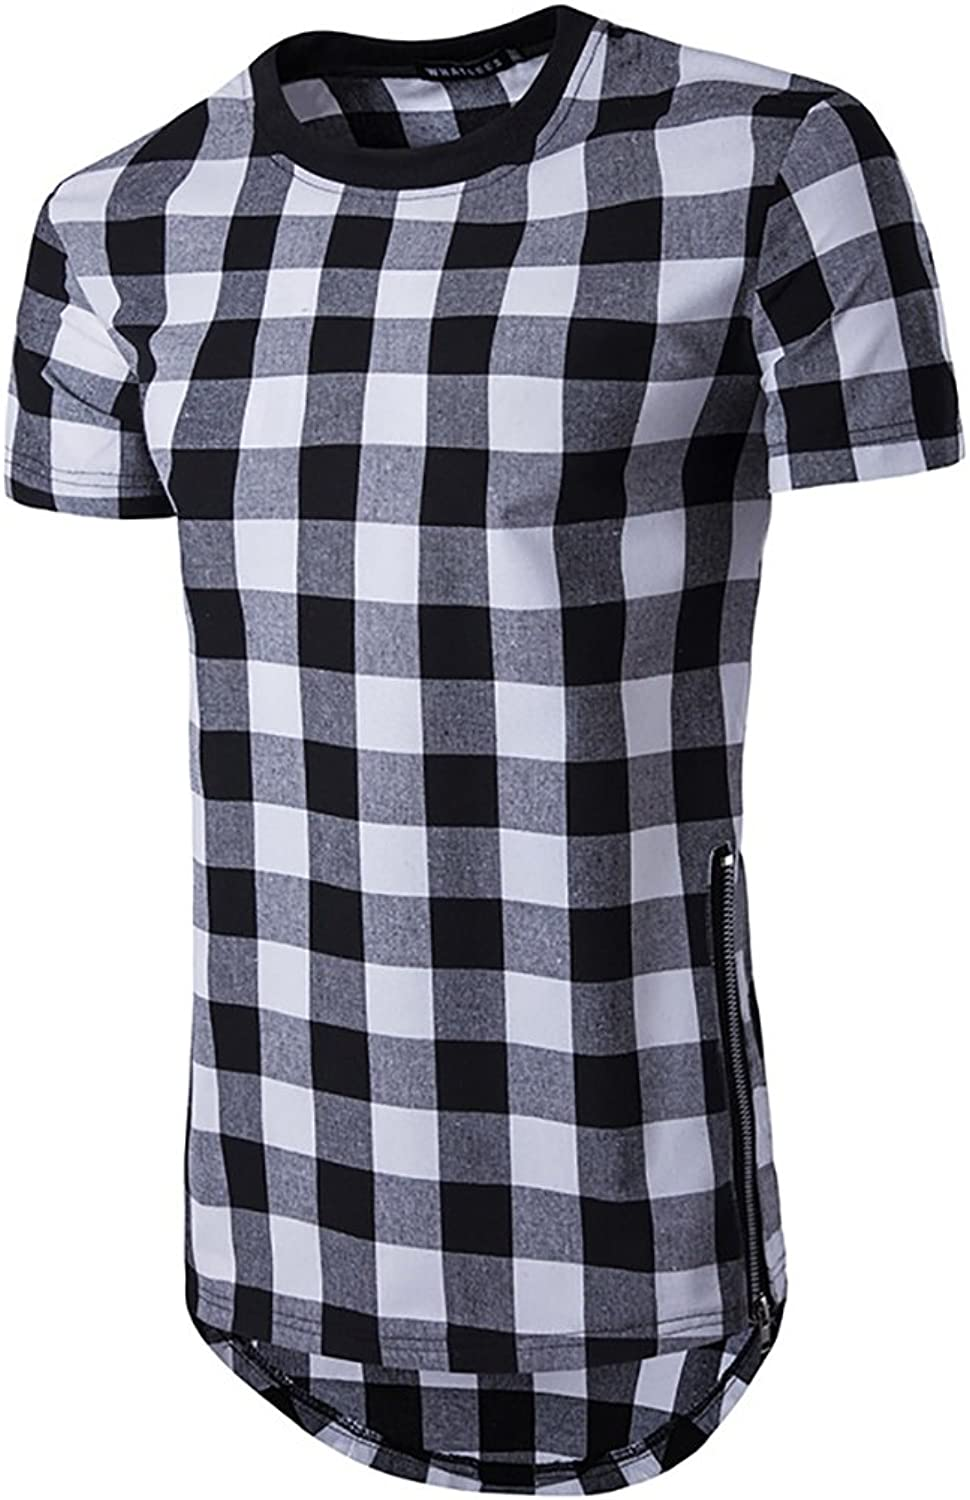 Men's TShirt Sports Cotton Short Sleeve  Solid colord Plaid Round Neck Long Section Double Side Zipper Casual Slim Shirt Tops (color   2, Size   M)